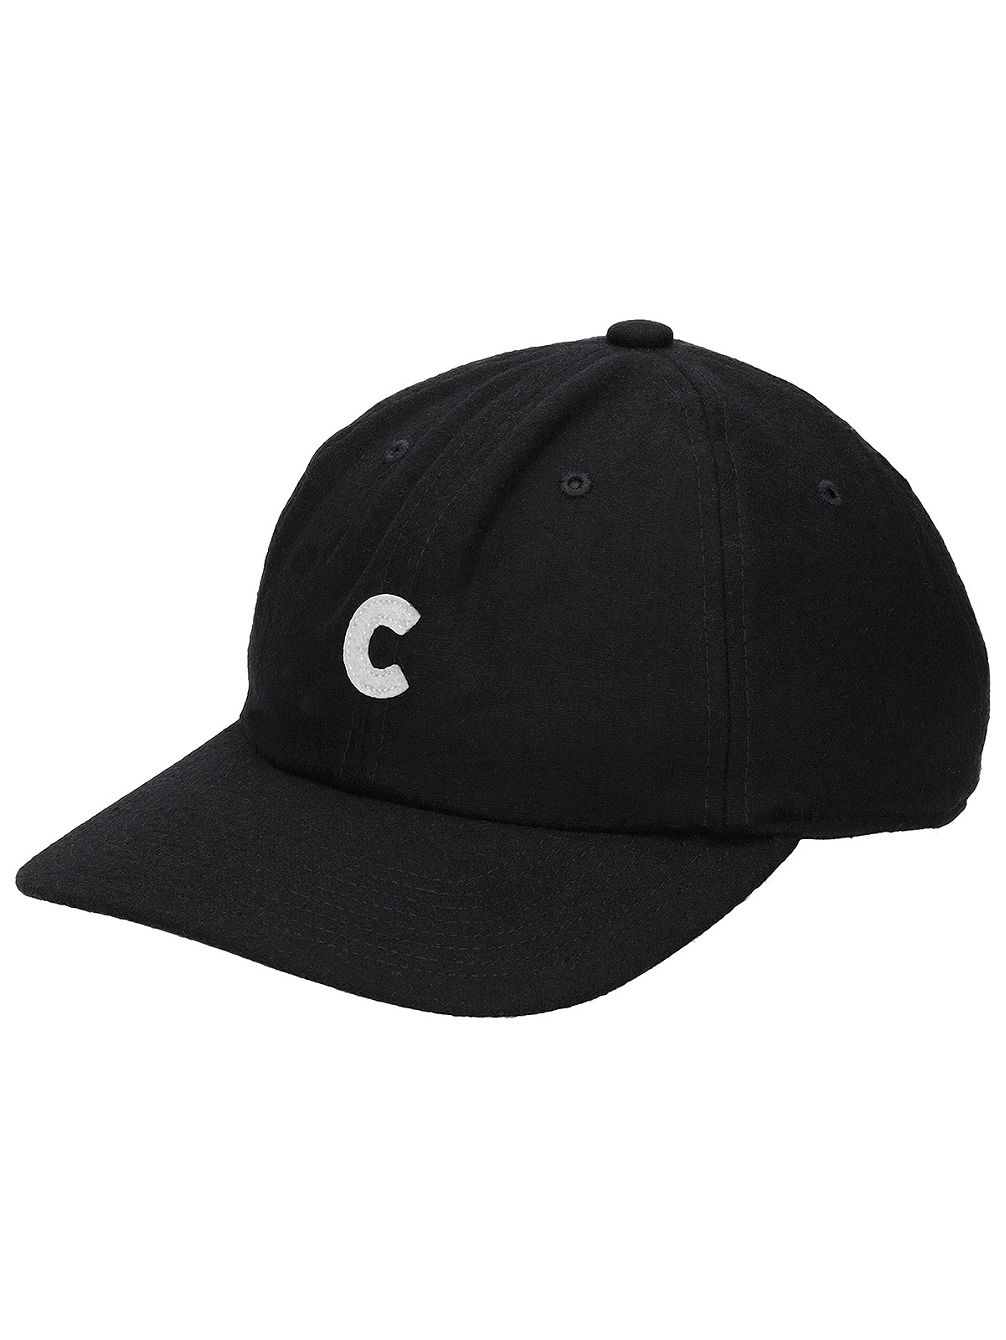 The Thomas Cap